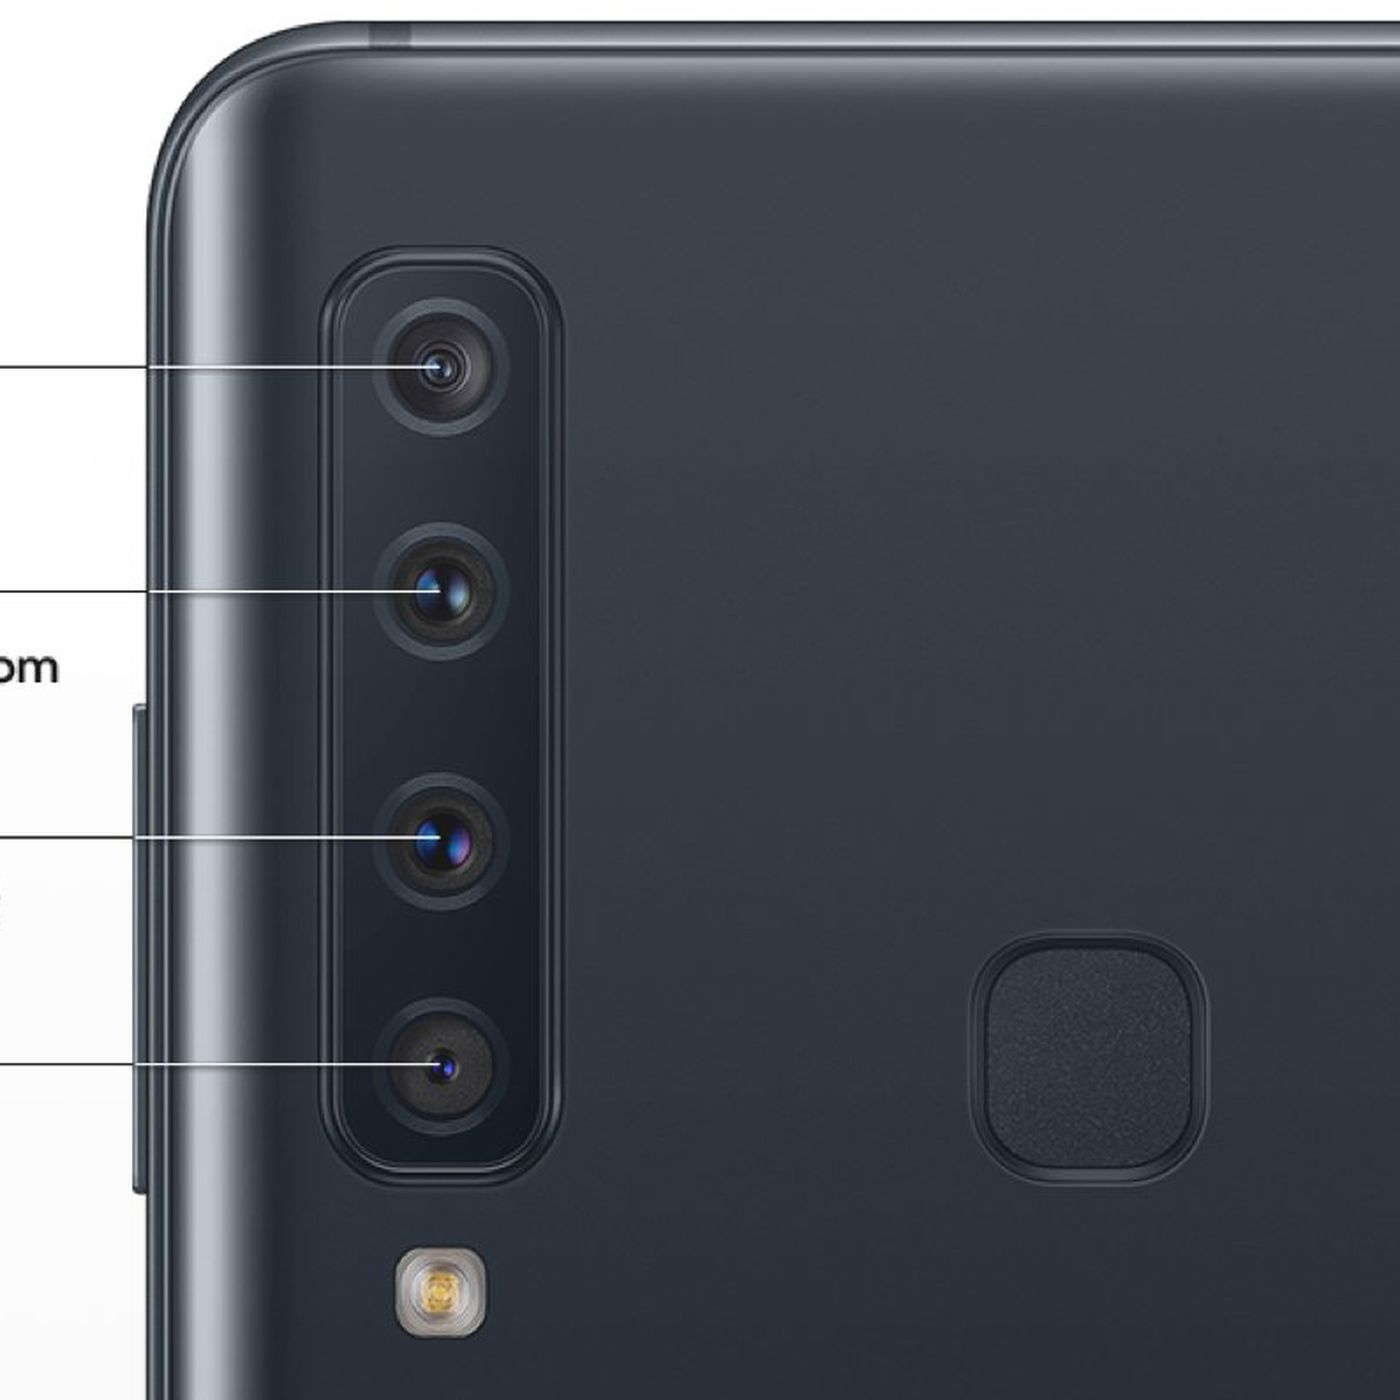 Leaked Pictures Of Galaxy A9 Reveal Samsung Really Did Stick Four